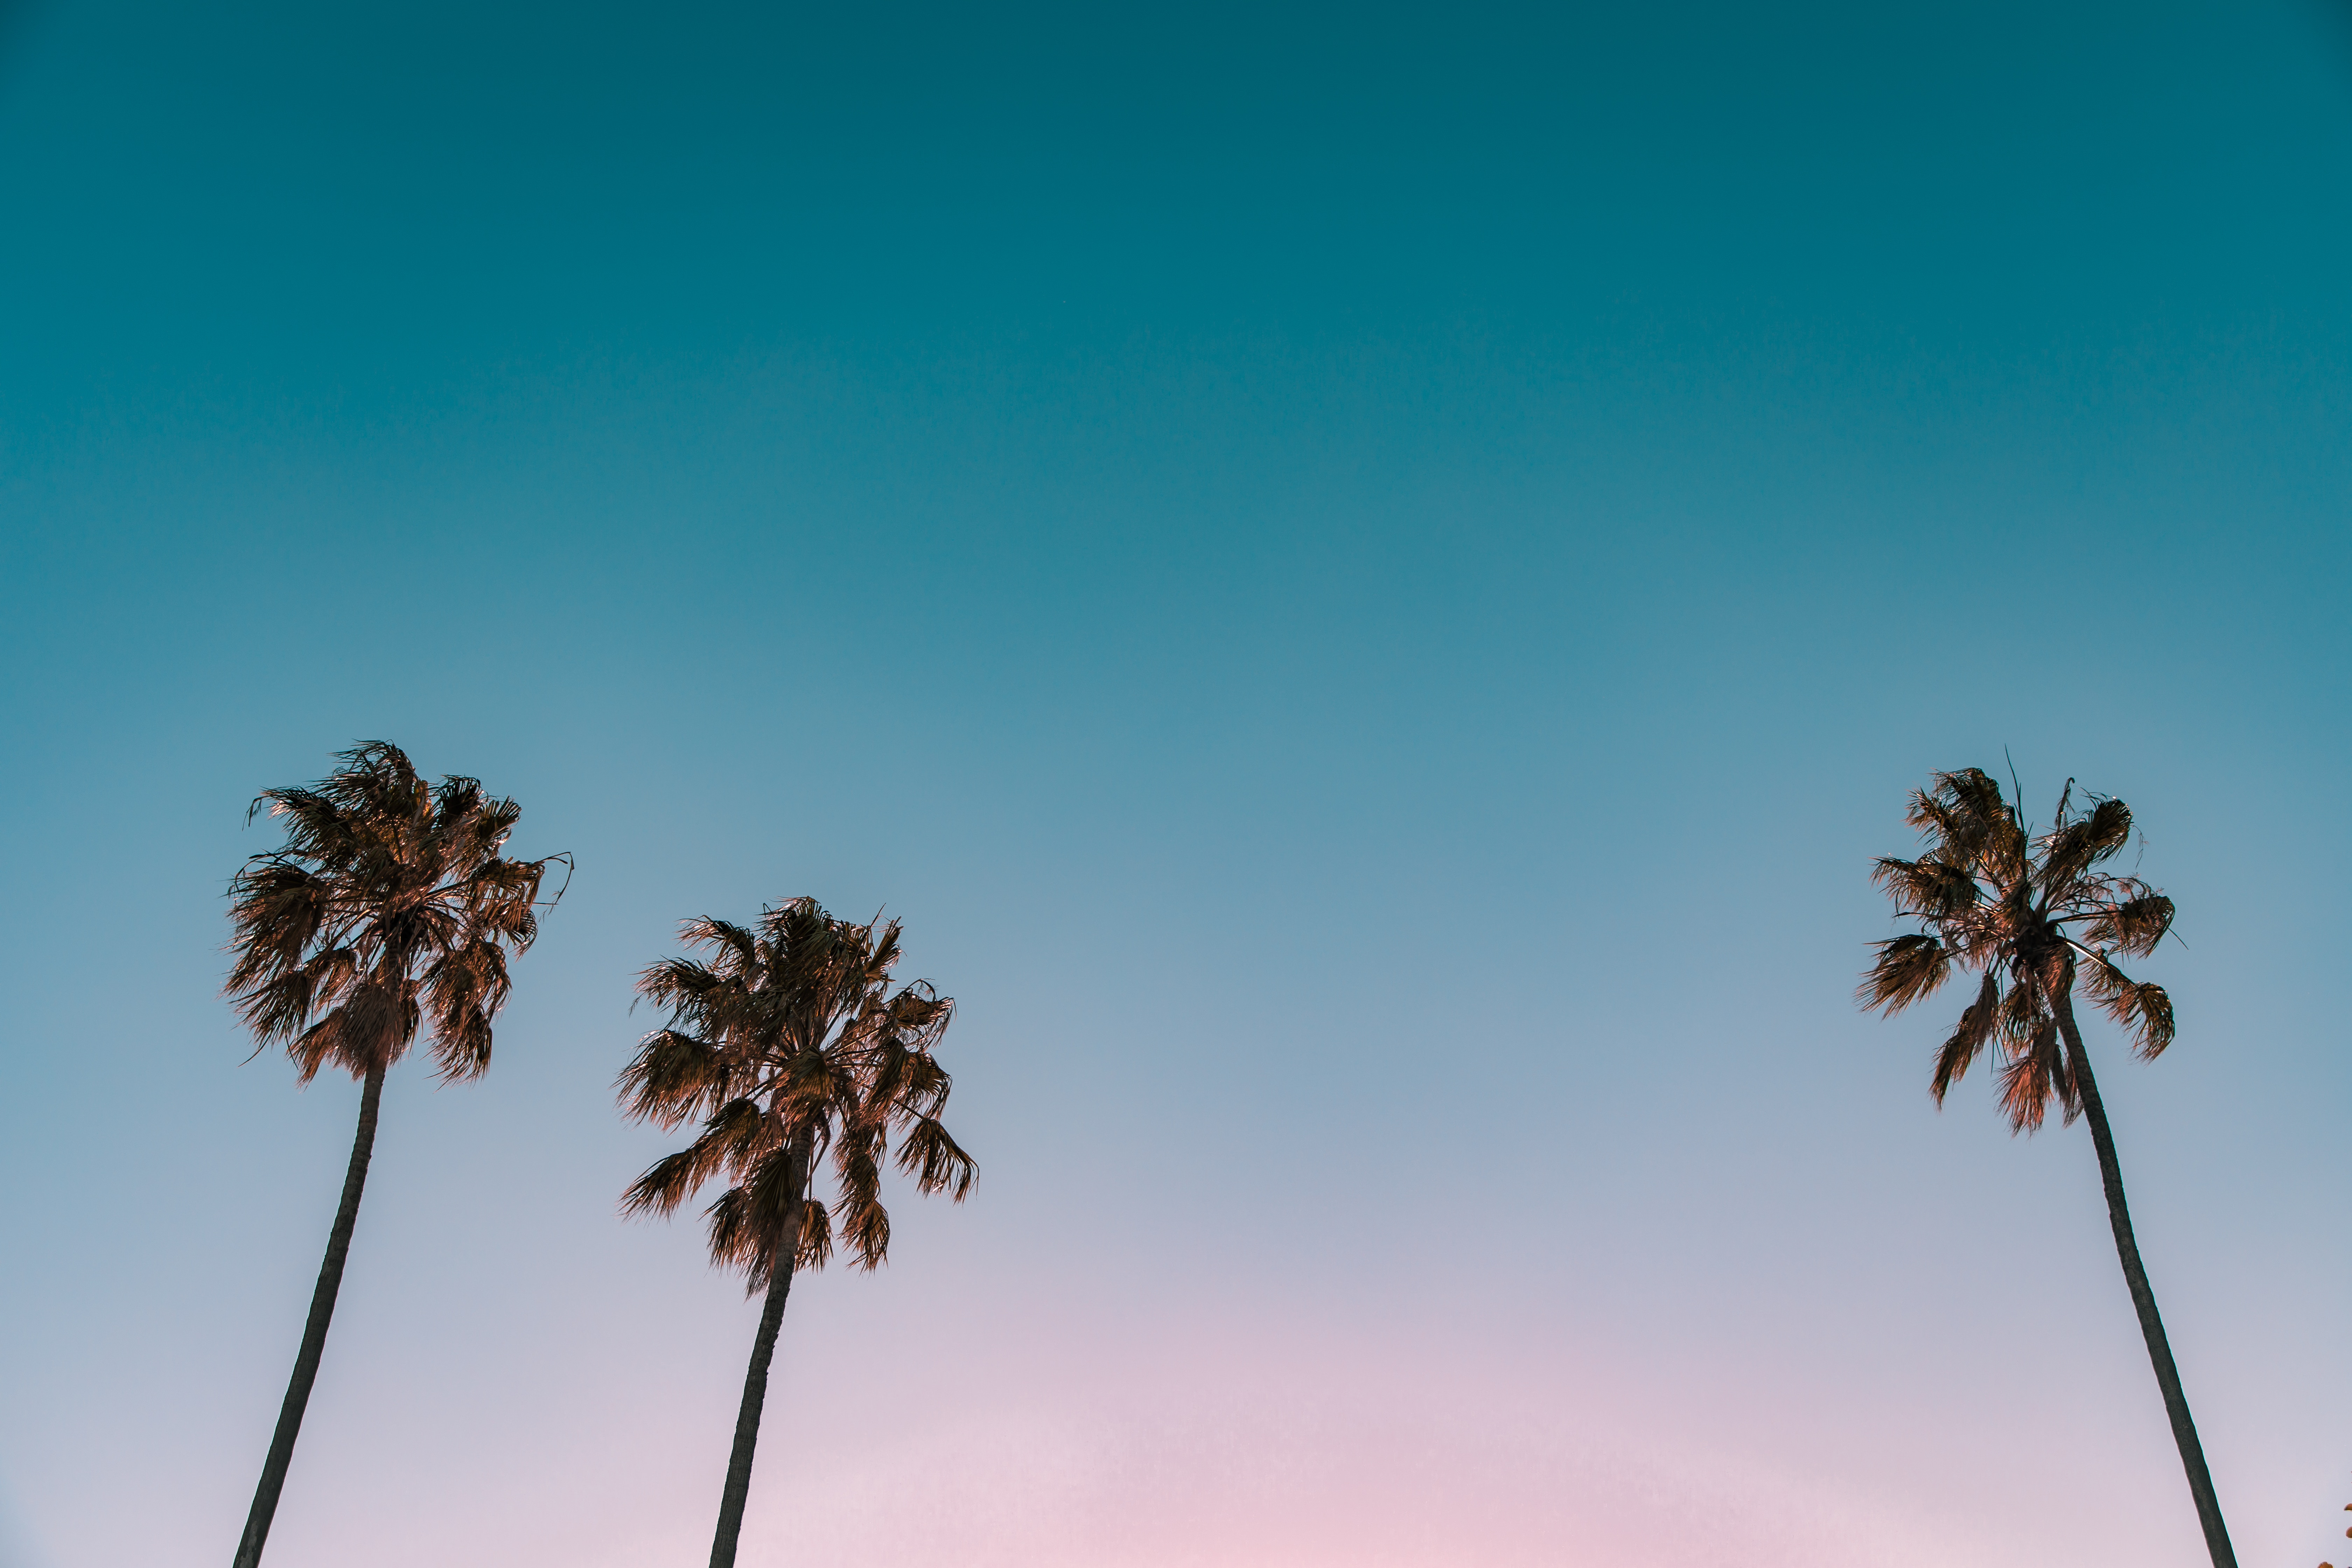 Image of some palms.